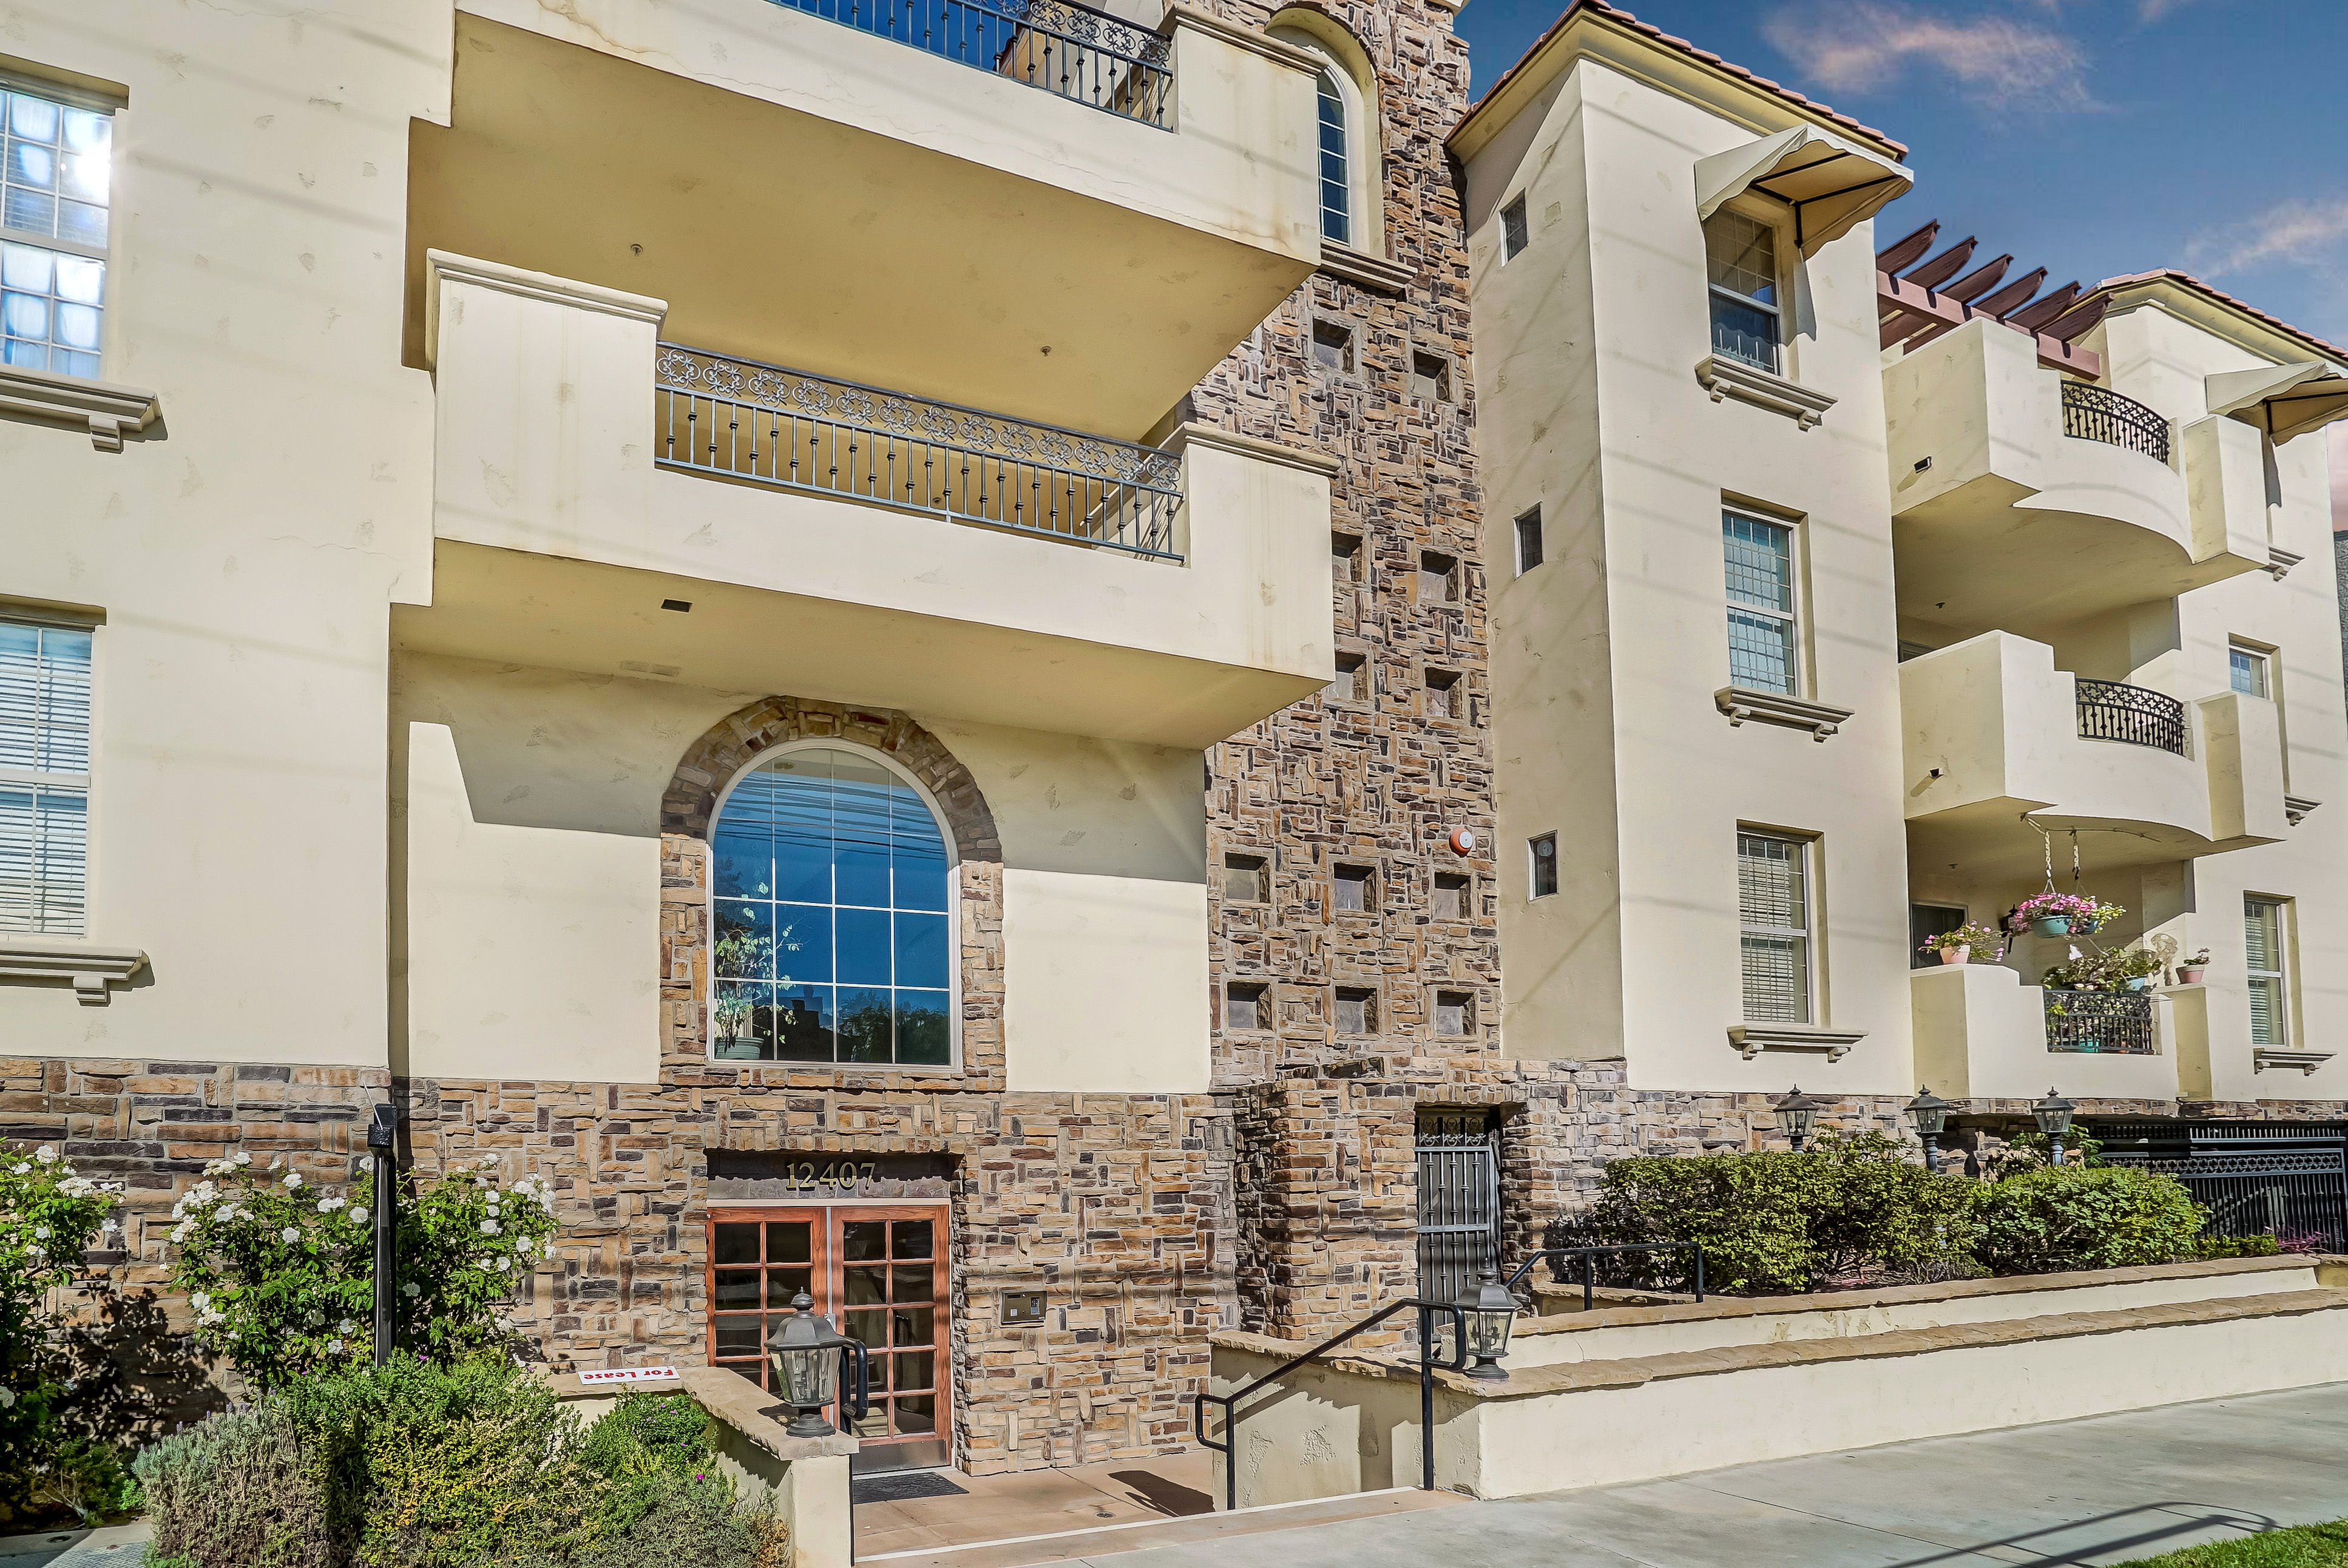 Pin By Chernov Team On Chernov Team 12407 Moorpark Street 203 With Images Condos For Sale Studio City Spacious Living Room